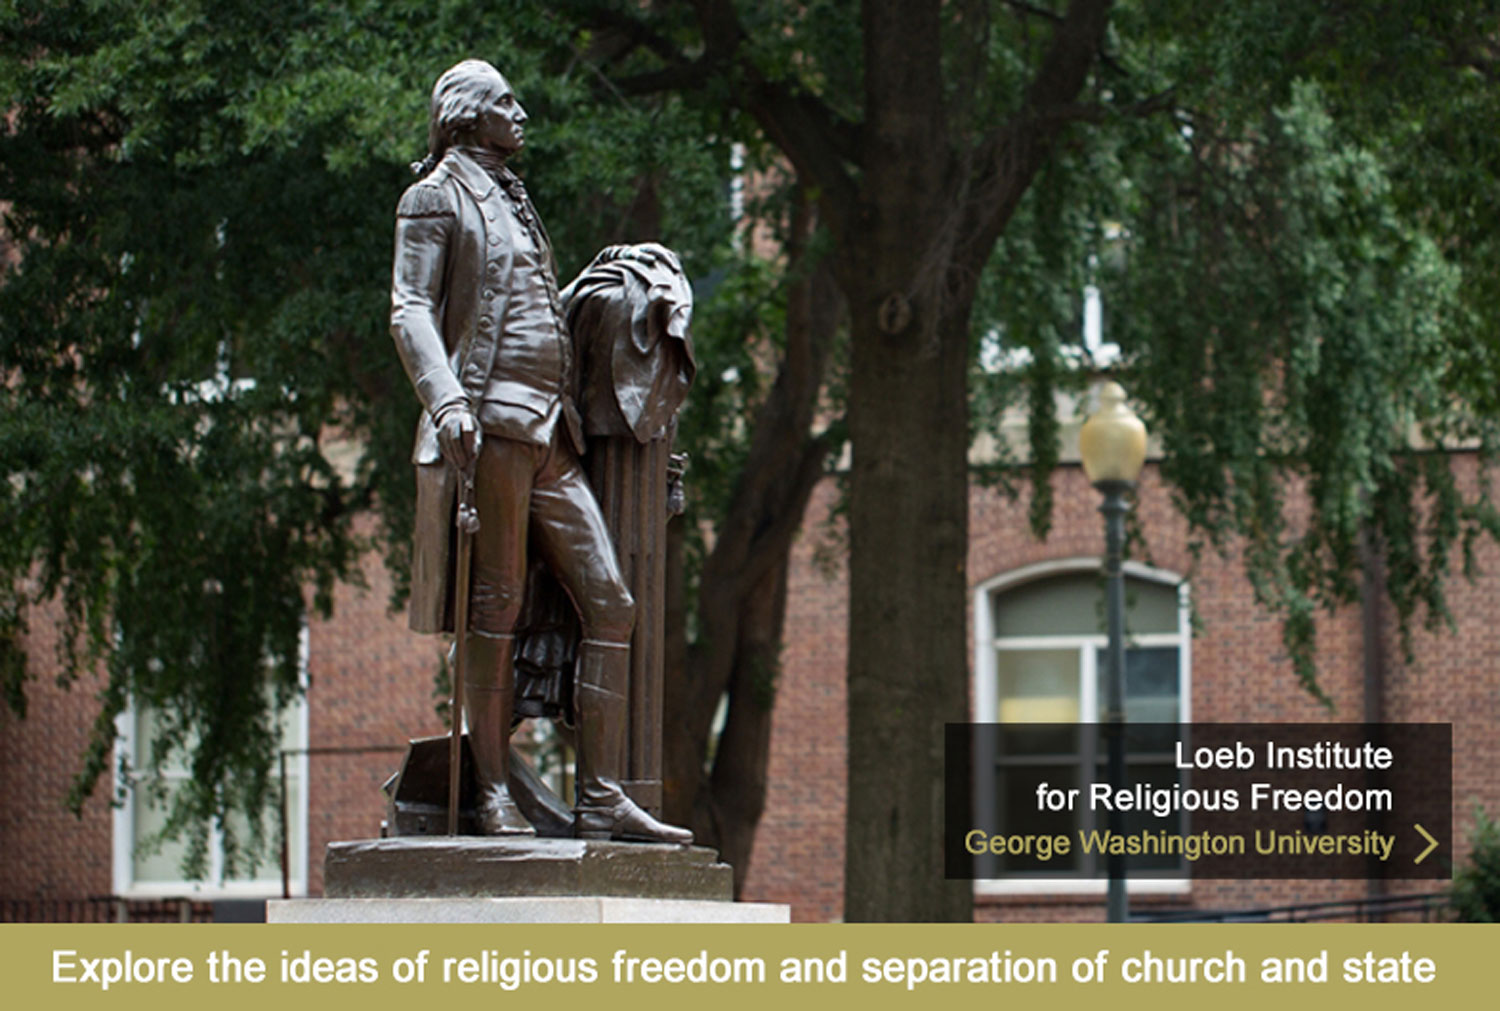 Loeb Institute for Religious Freedom at GWU (George Washington University)